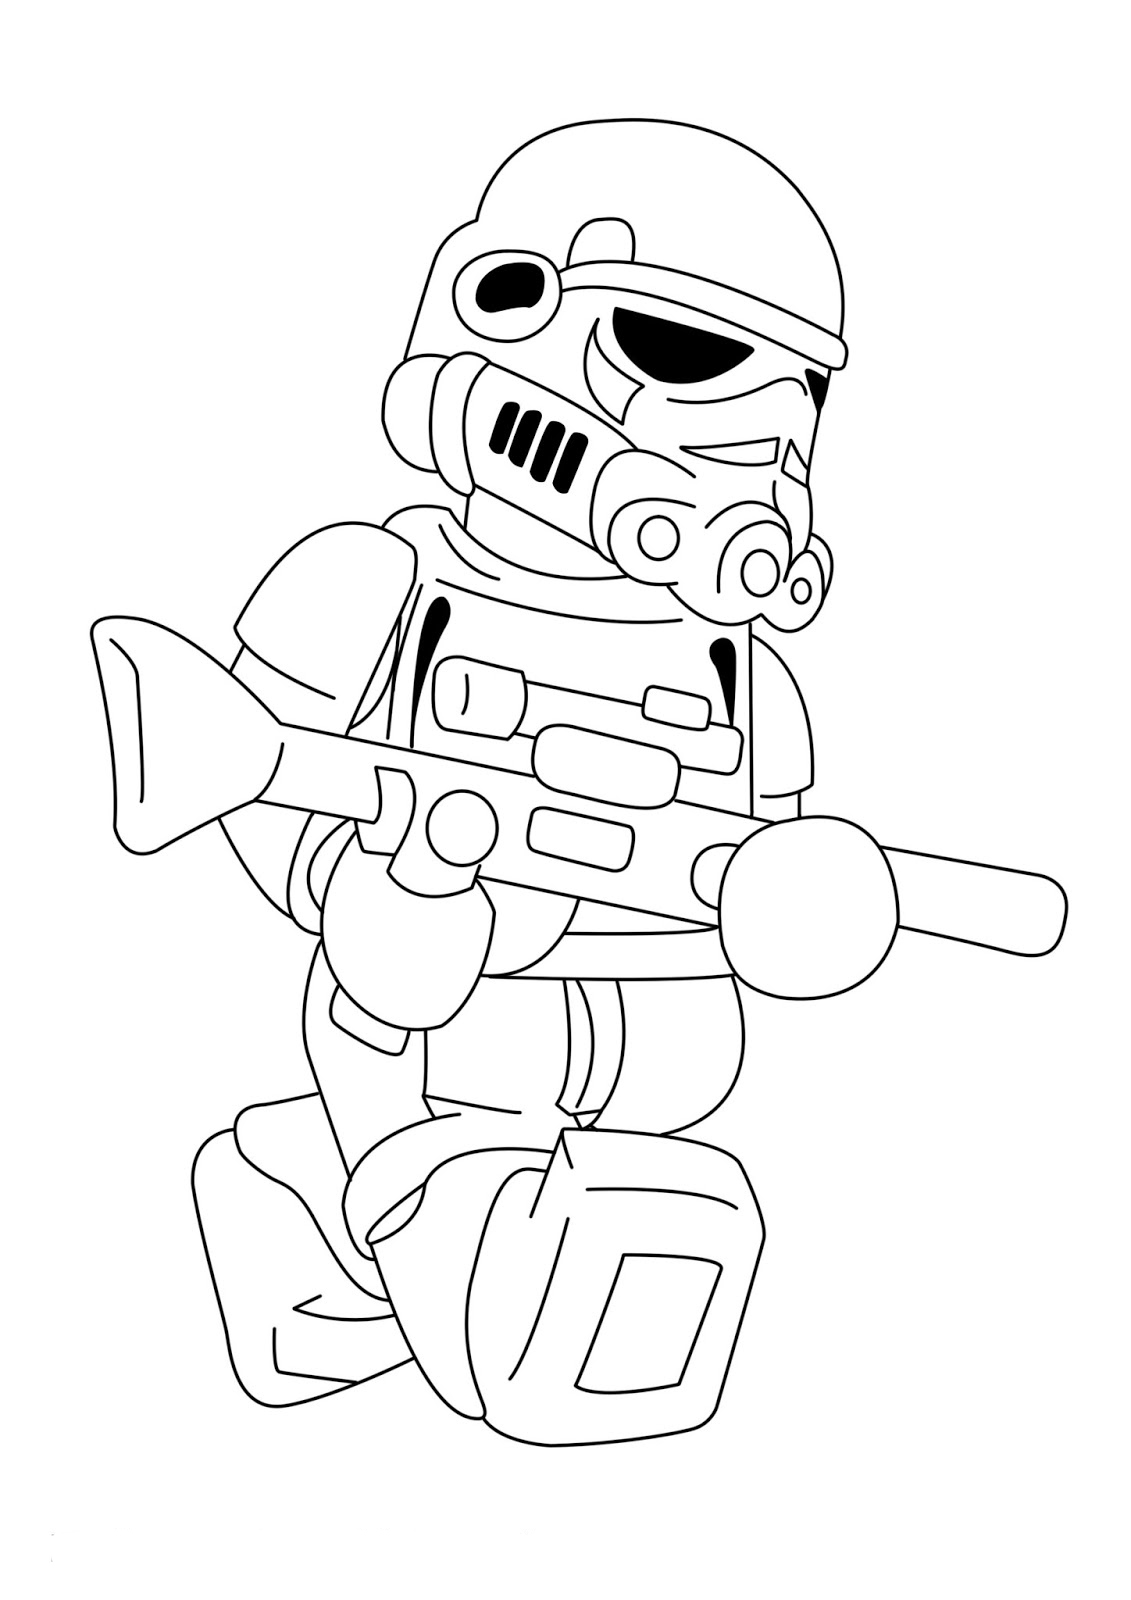 lego star wars printable coloring pages lego star wars coloring pages to download and print for free coloring pages wars printable lego star